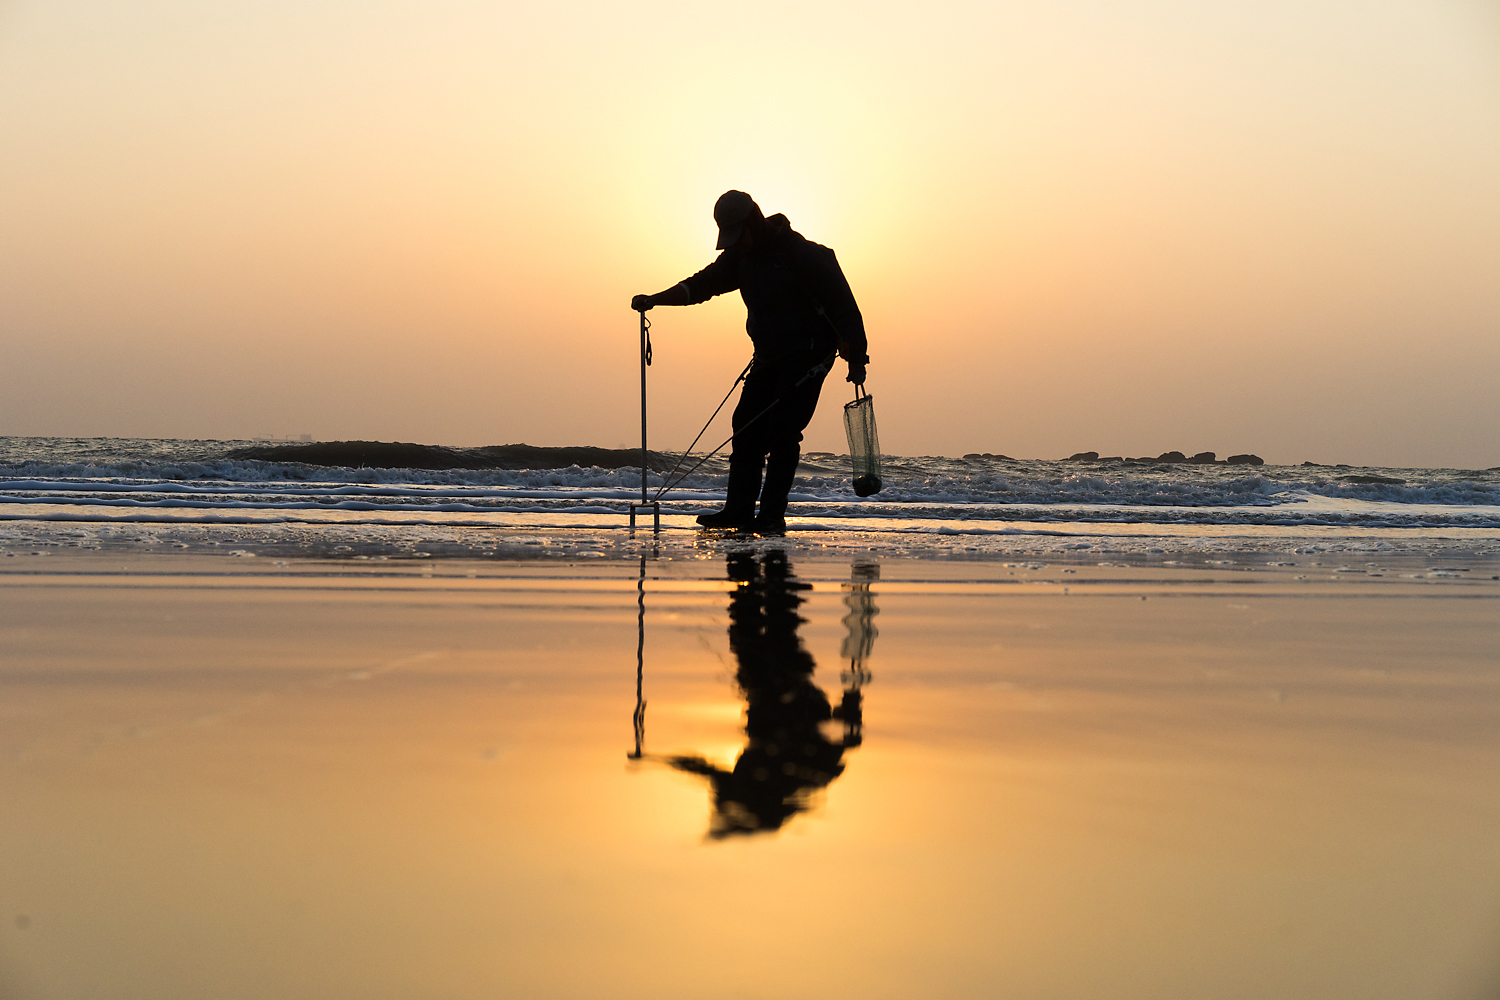 A villager on Kinmen's southwestern coast combs the beach at sunrise as the tide recedes. It was only in 2013 that Kinmen was declared free of mines. Tens of thousands of mines were planted in the '50s and '60s at the height of tension between Taiwan and the People's Republic of China. The island was ruled as a military base until 1992 and was subjected to 'frogman' attacks and regular Chinese shelling. The mine-laden beaches and military rules restricting locals from swimming or going near coastal areas where the army was stationed have left Kinmen residents with a complex feeling towards the sea. Many residents cannot swim and still have a fear of the water for all the negative imagery it conjures.